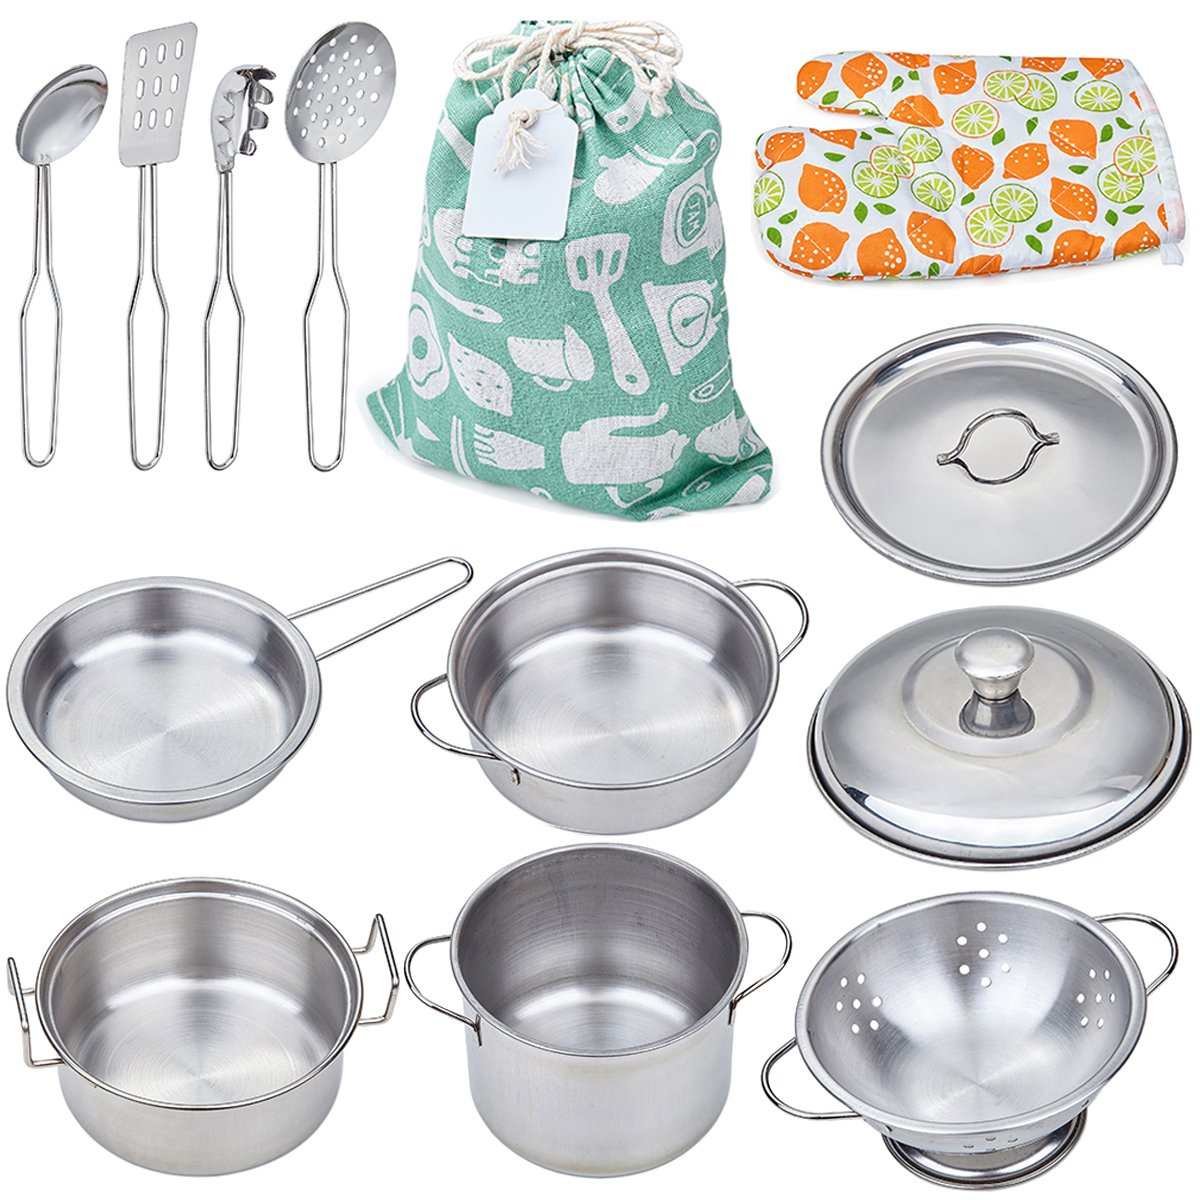 Play Pots and Pans Toys for Kids - Kitchen Playset Pretend Cookware Mini Stainless Steel Cooking Utensils Development Toys for Toddlers & Children Ages 3 Years and up